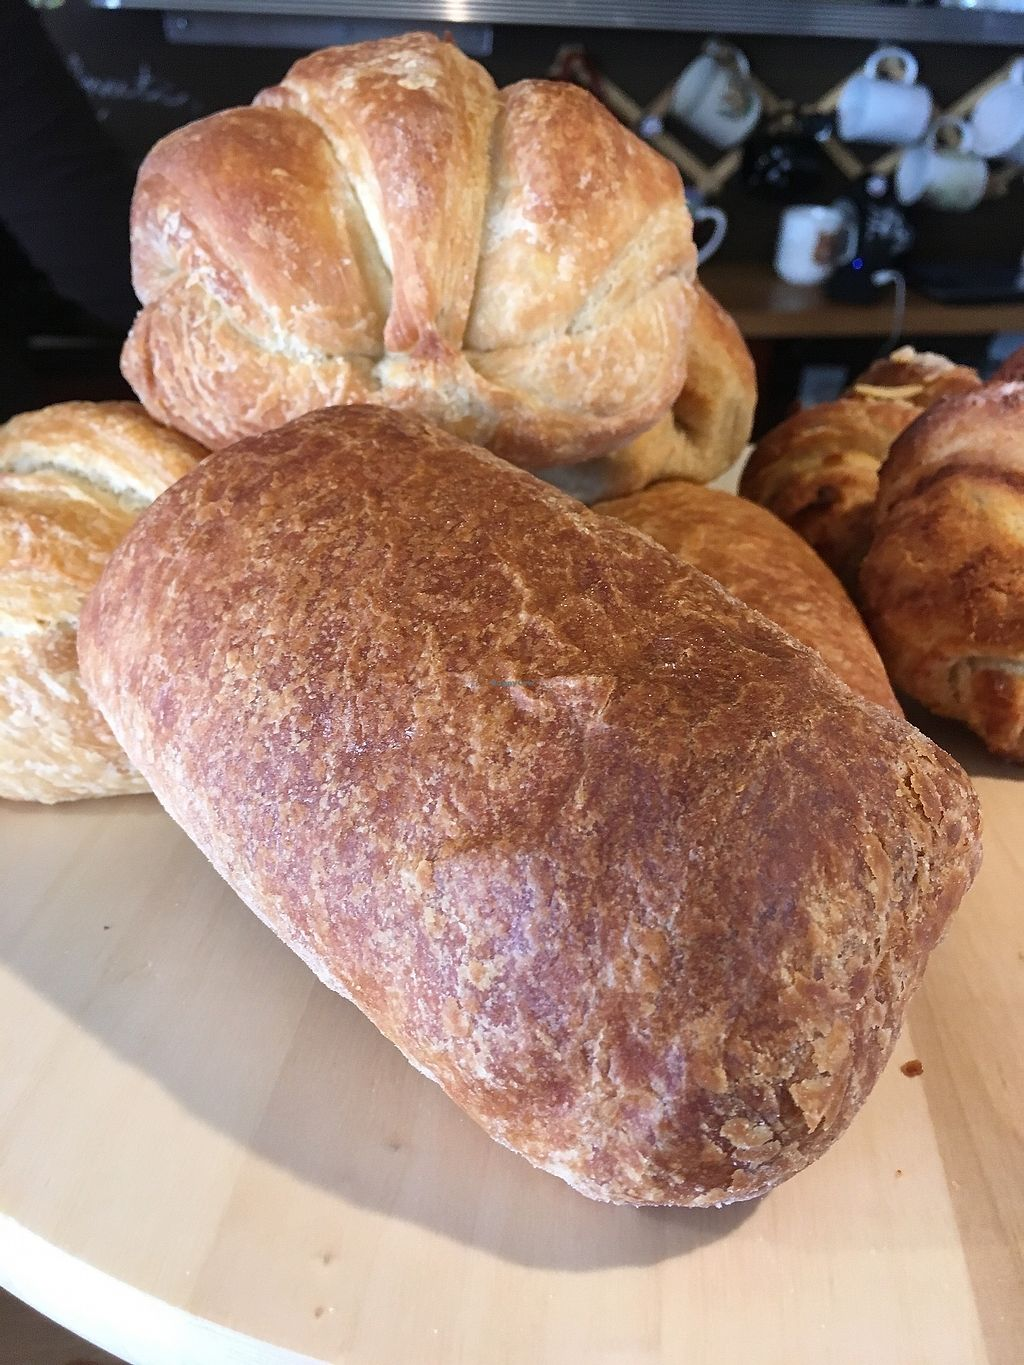 """Photo of Brooklyn Whiskers - Bushwick  by <a href=""""/members/profile/ecoRDN"""">ecoRDN</a> <br/>Brooklyn Whiskers Bakery <br/> February 13, 2018  - <a href='/contact/abuse/image/74976/358833'>Report</a>"""